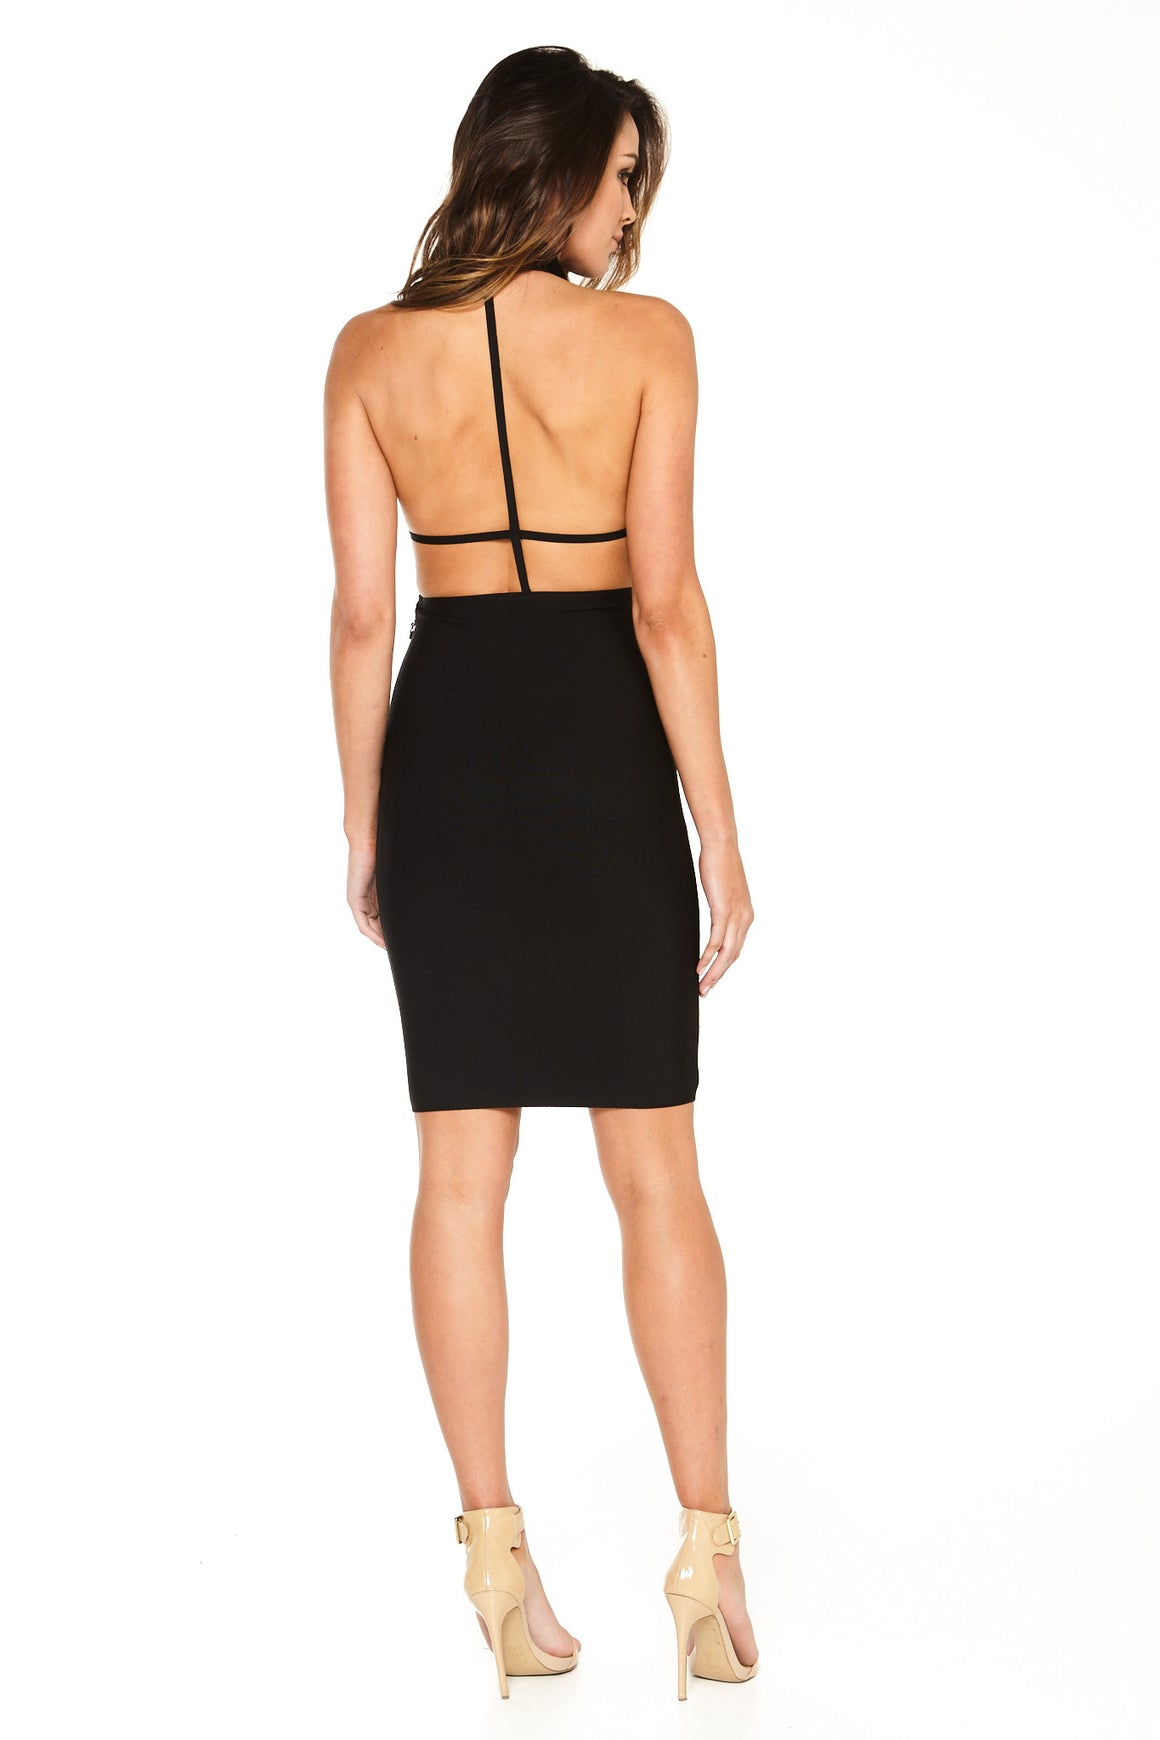 Ava T-Back Bandage Dress - Black